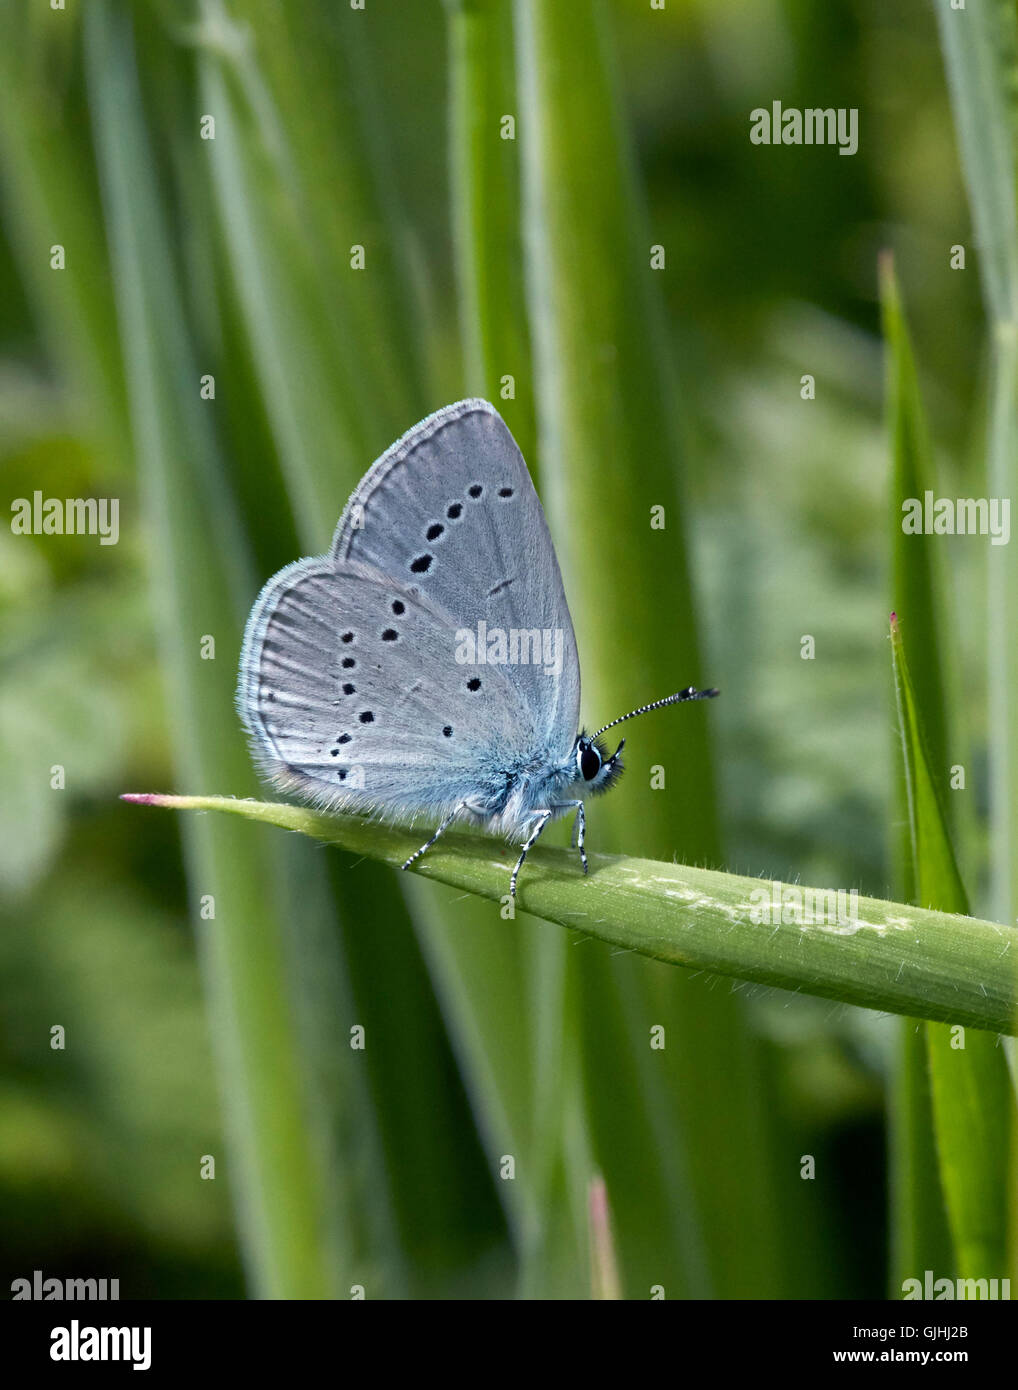 Small Blue butterfly perched on grass.  Howell Hill nature reserve, Ewell, Surrey, England. - Stock Image